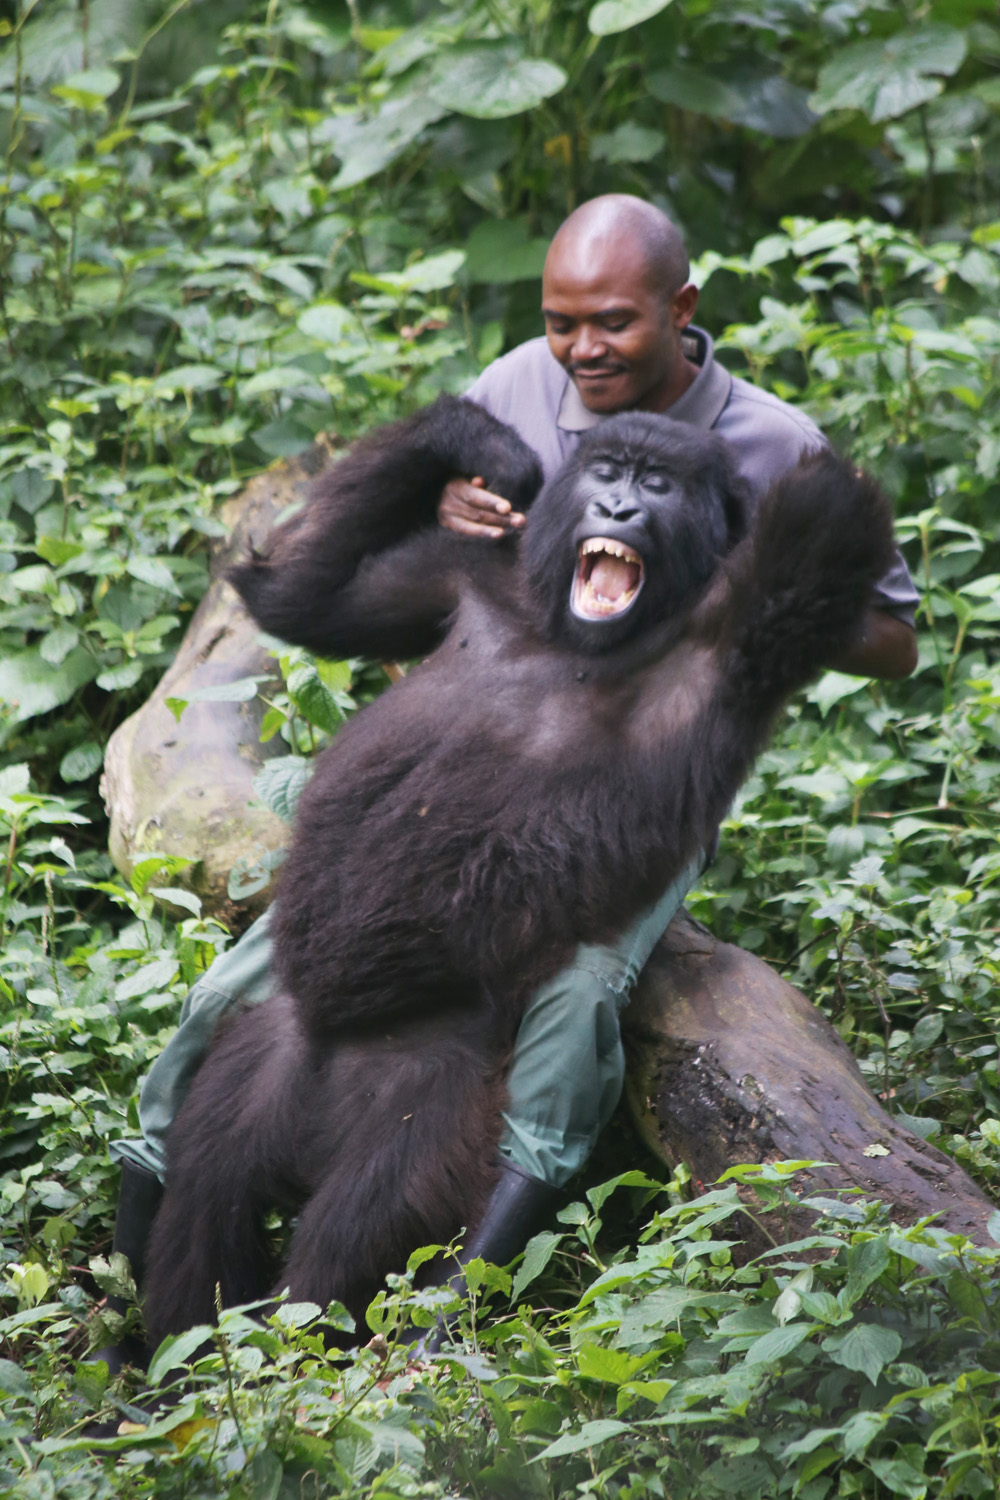 Patrick, tickling his gorilla friend at Mikeno